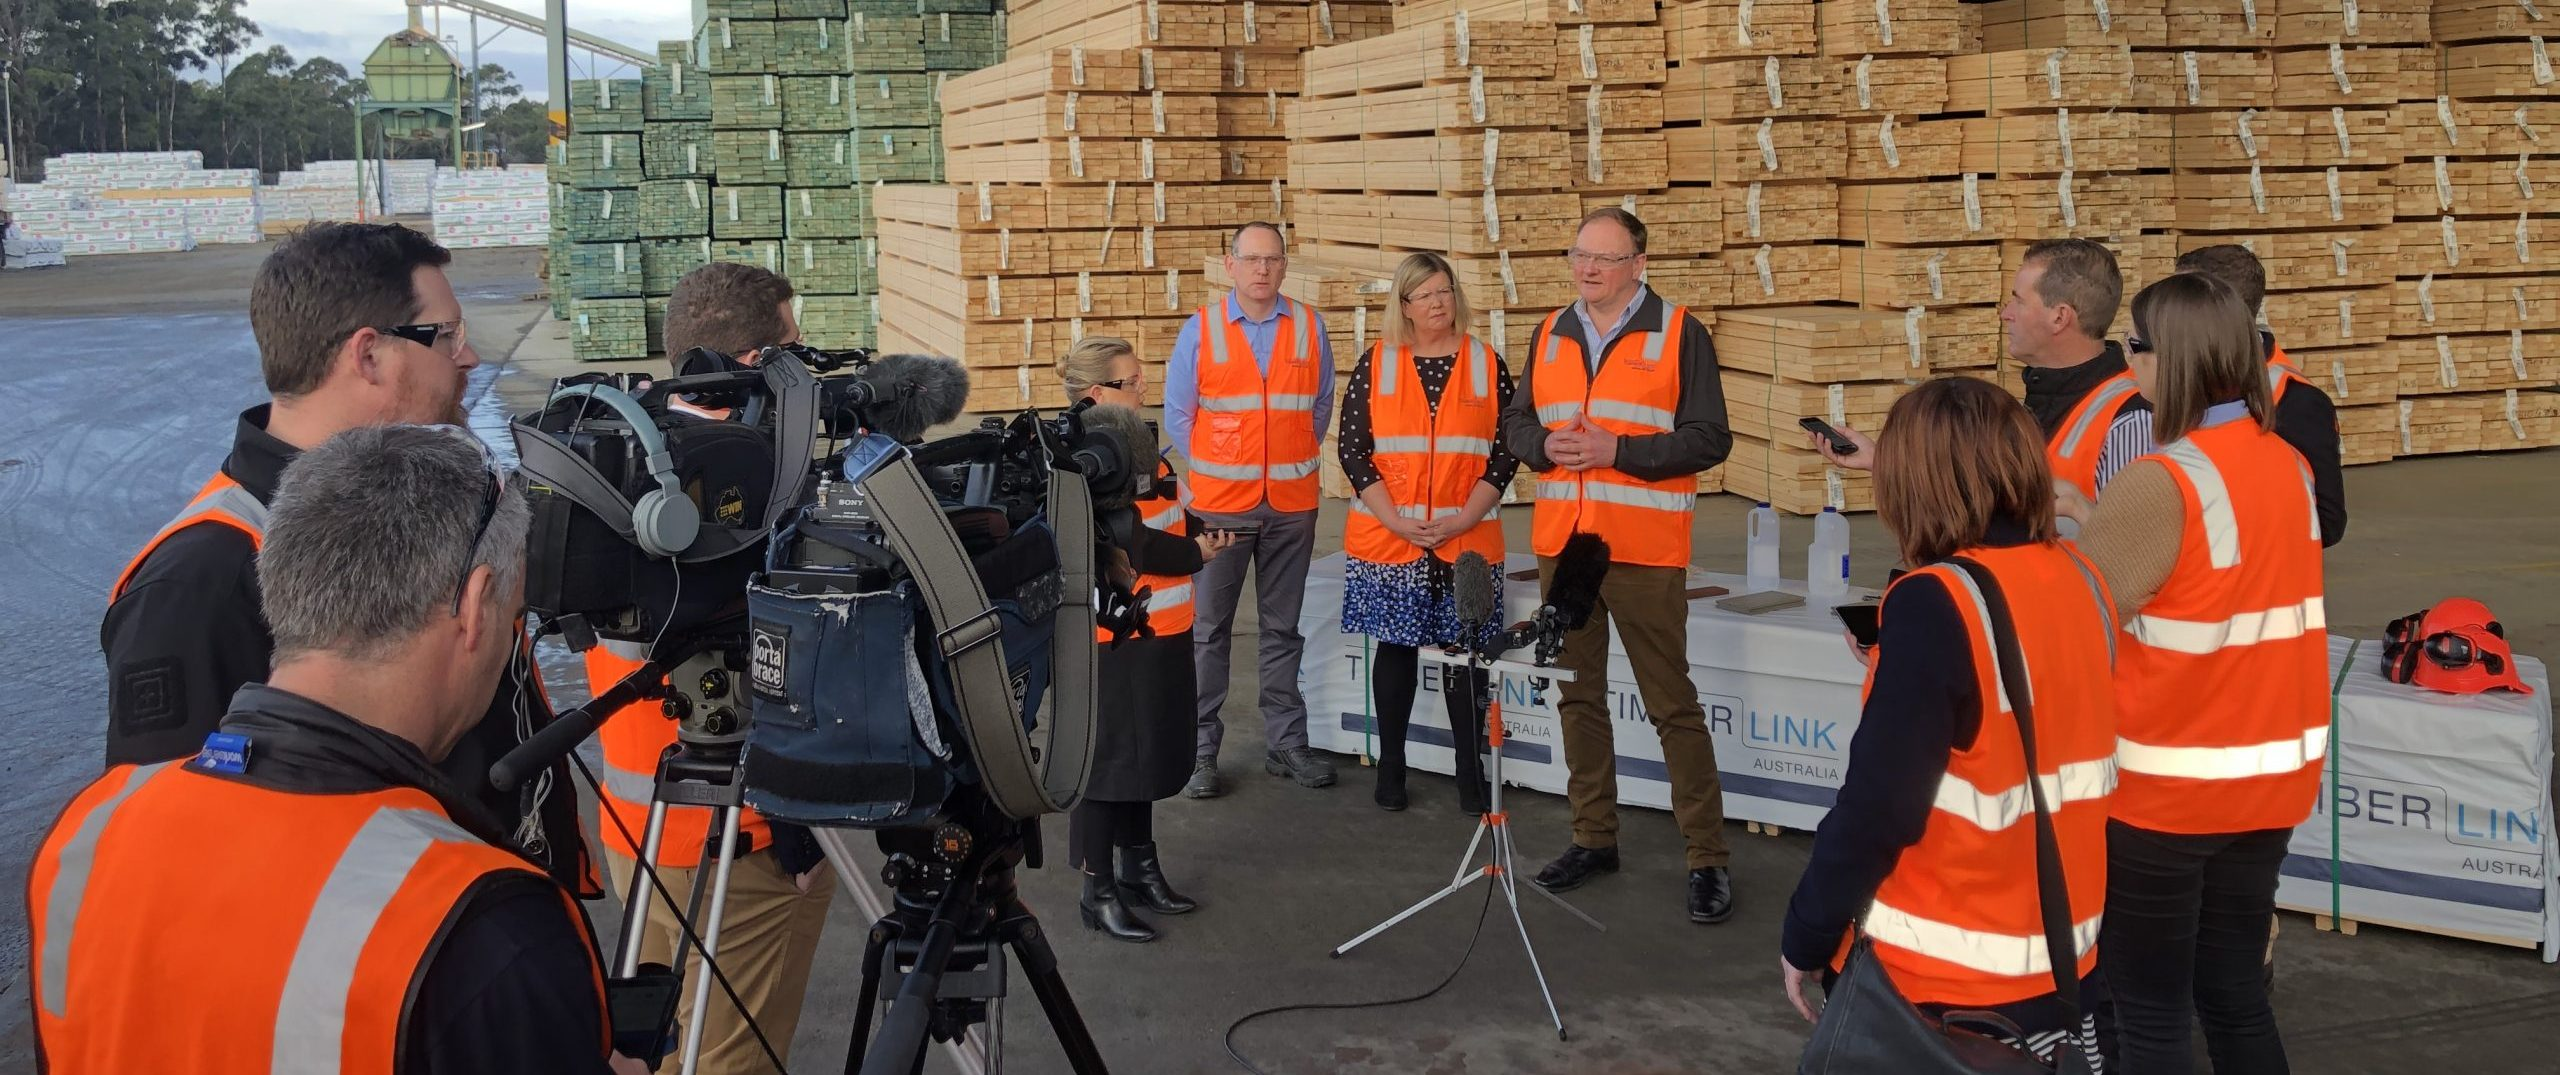 Announcement being made that Timberlink will build Tasmania's first Bio Composite plant in Tasmania